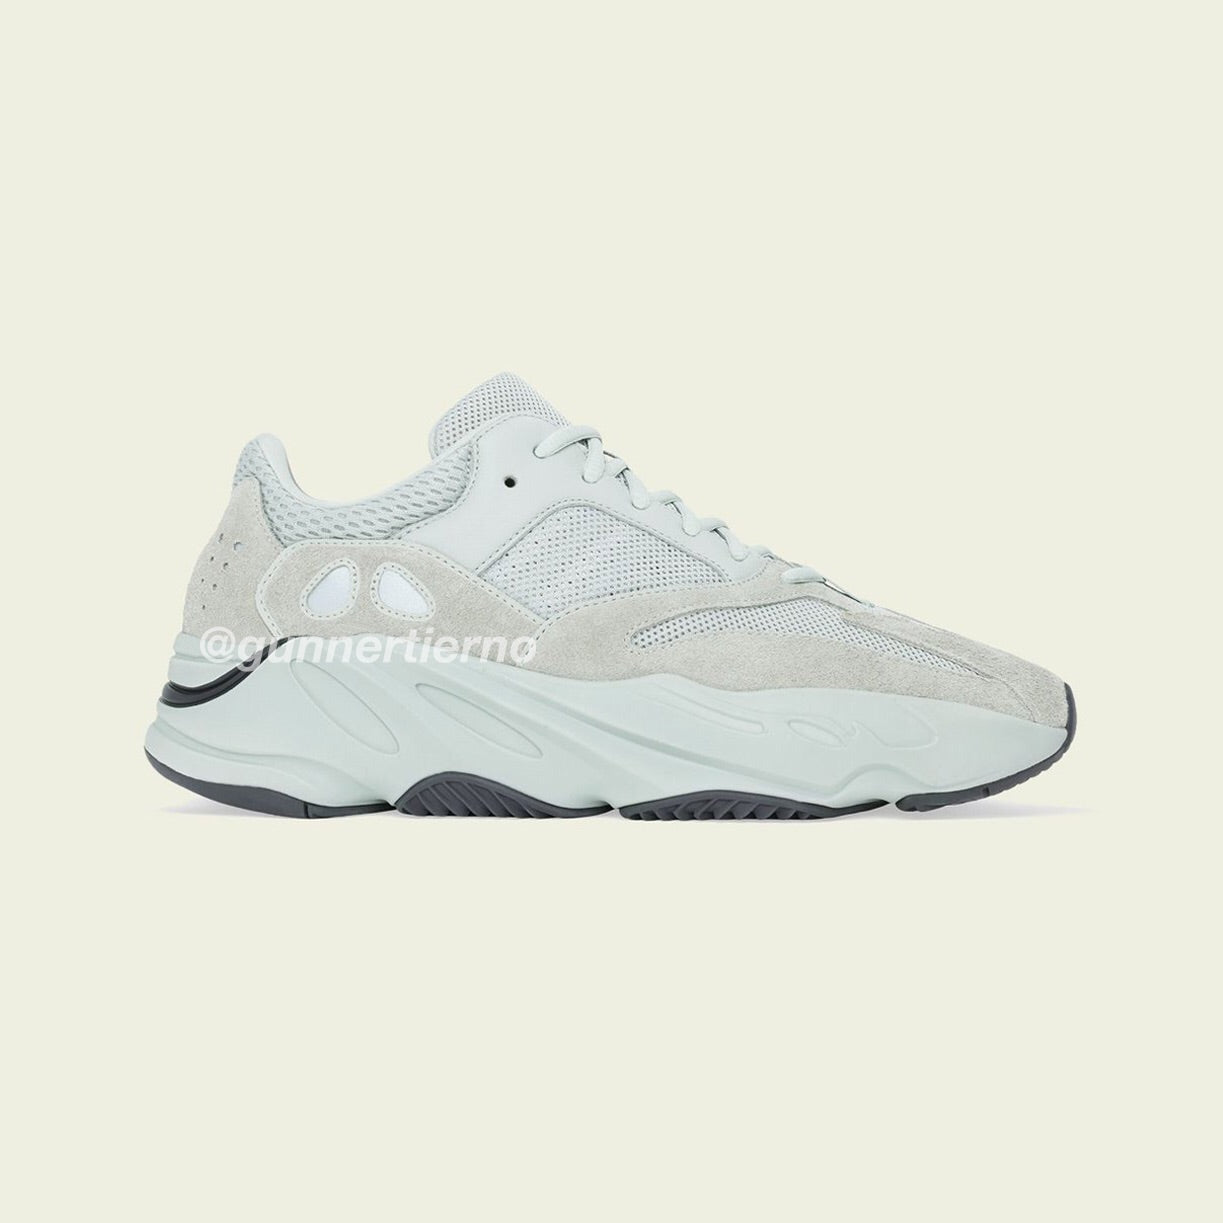 Adidas Yeezy Boost 700 Salt - World Wide Drip